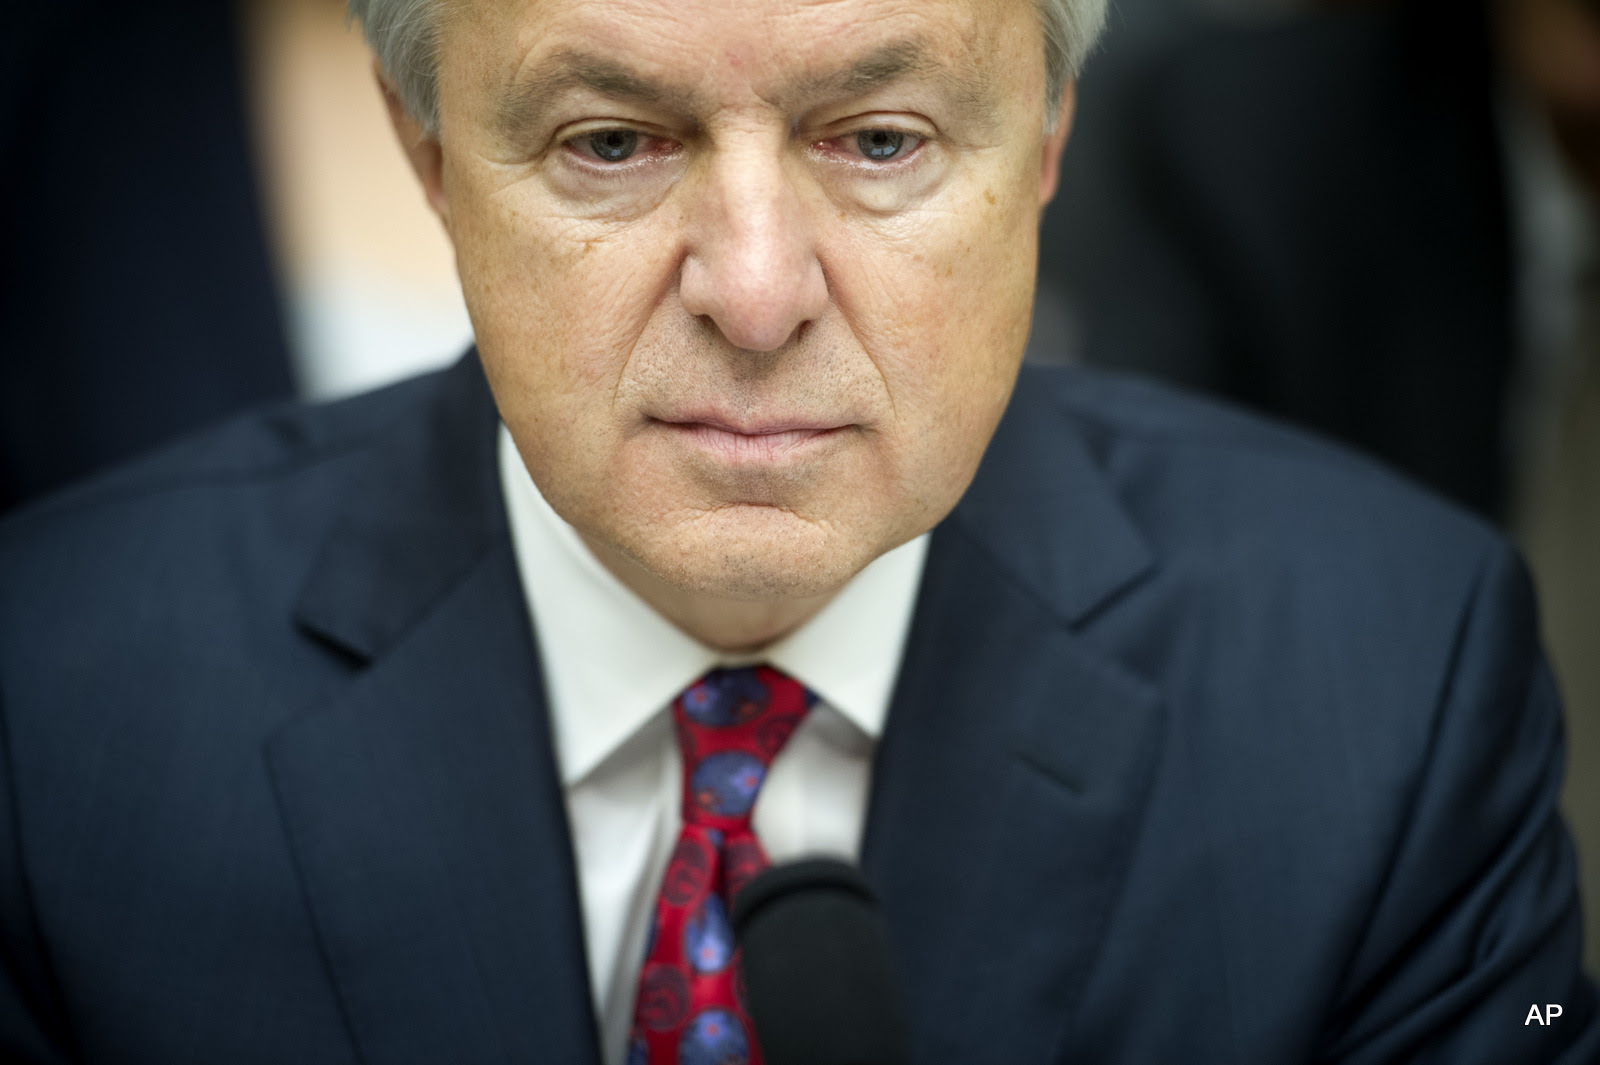 Wells Fargo CEO John Stumpf testifies on Capitol Hill in Washington, before the House Financial Services Committee investigating Wells Fargo's opening of unauthorized customer accounts.